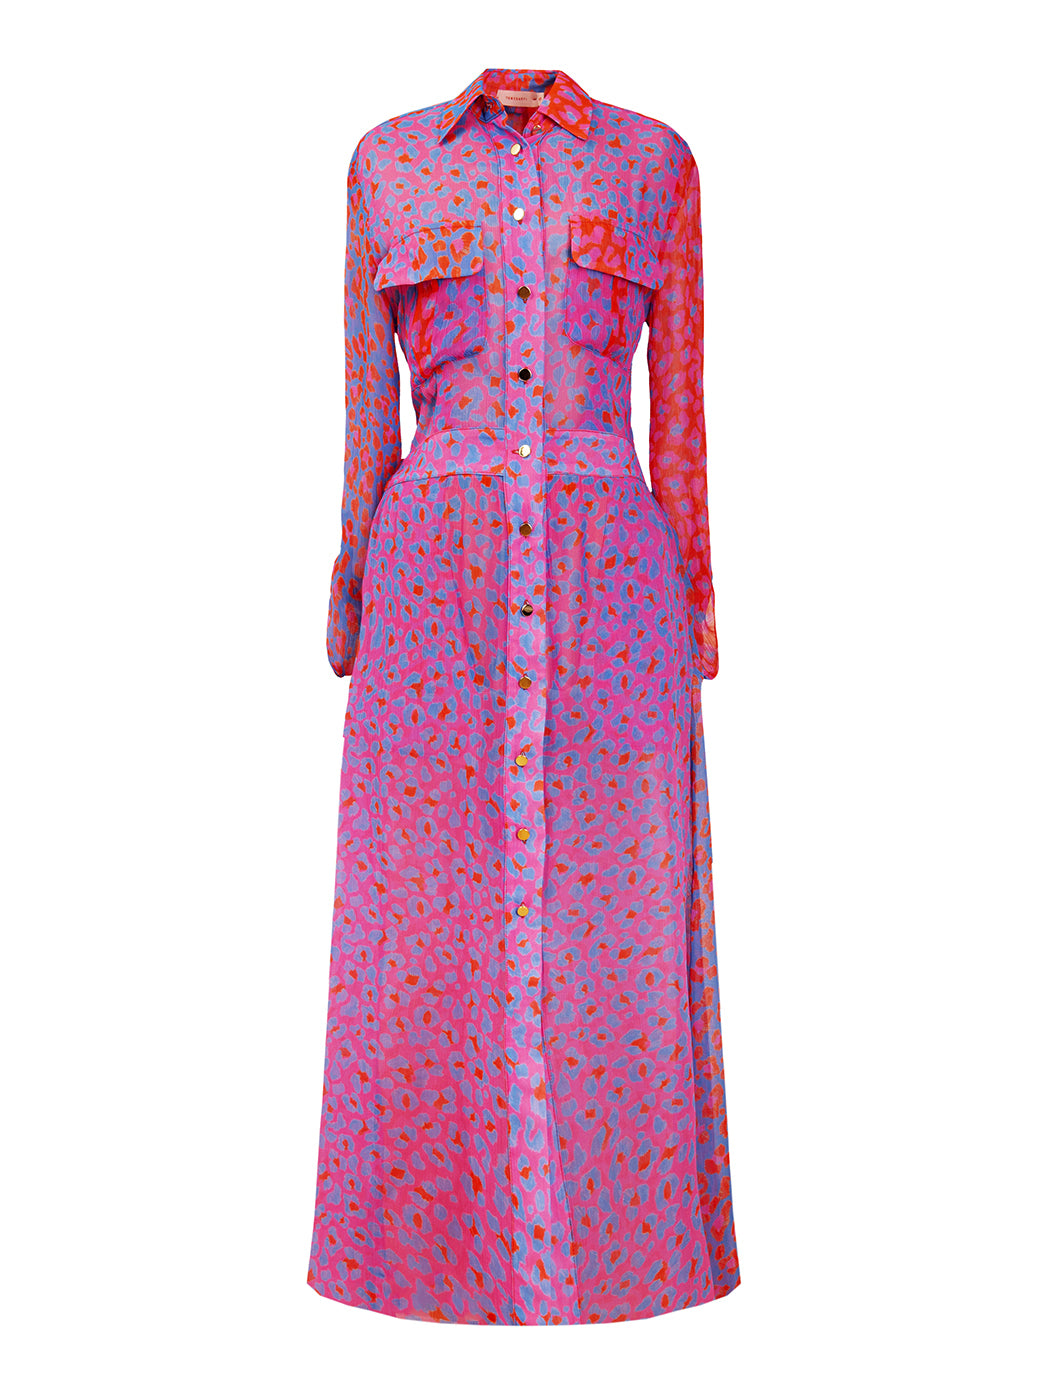 TAPOLCA long shirtdress 'blossom cheetah'